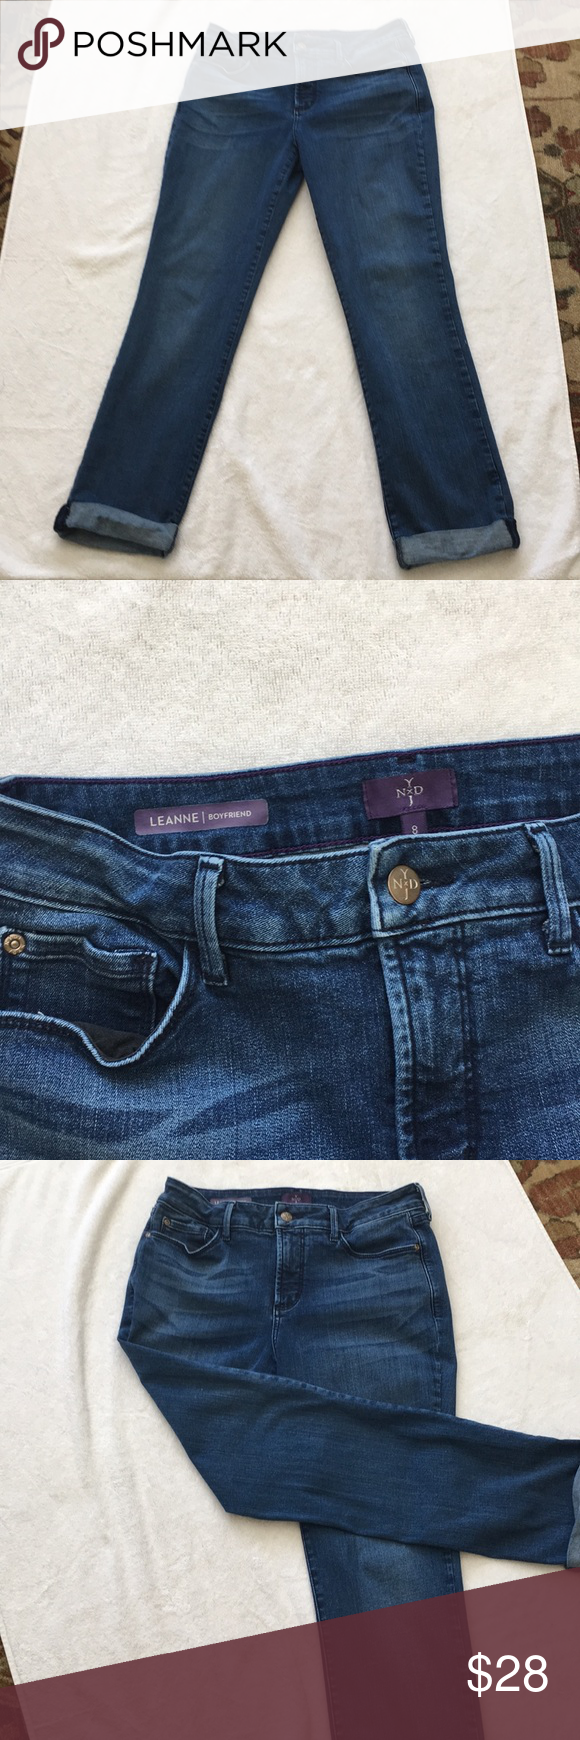 NYDJ LEANNE boyfriend 8 Jeans 5 pocket cuffed bluejeans in good condition. Soft, comfortable with Lift, Tuck Technology, measured lying flat~ Approx. 27 1/2